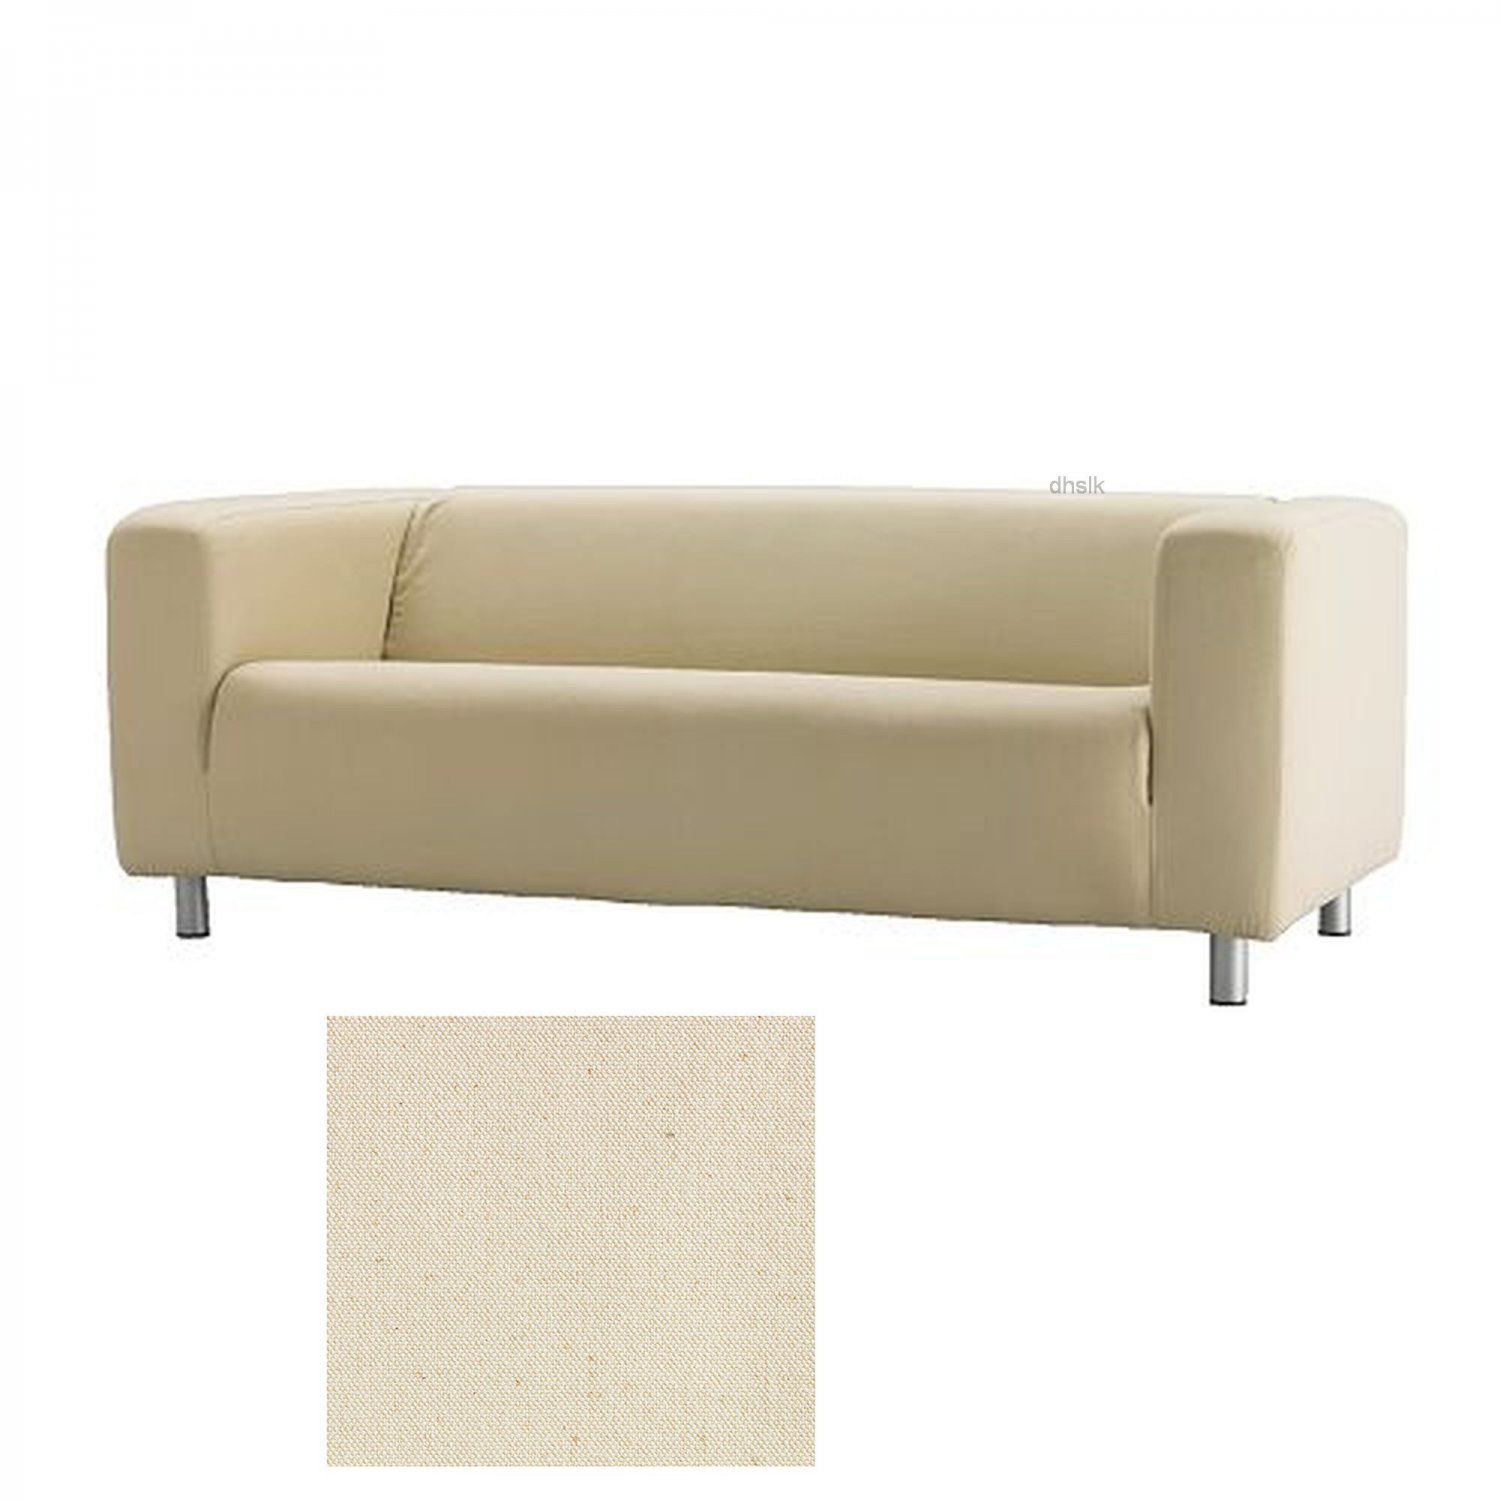 Ikea klippan sofa slipcover cover alme natural beige cotton for Sofa jugendzimmer ikea